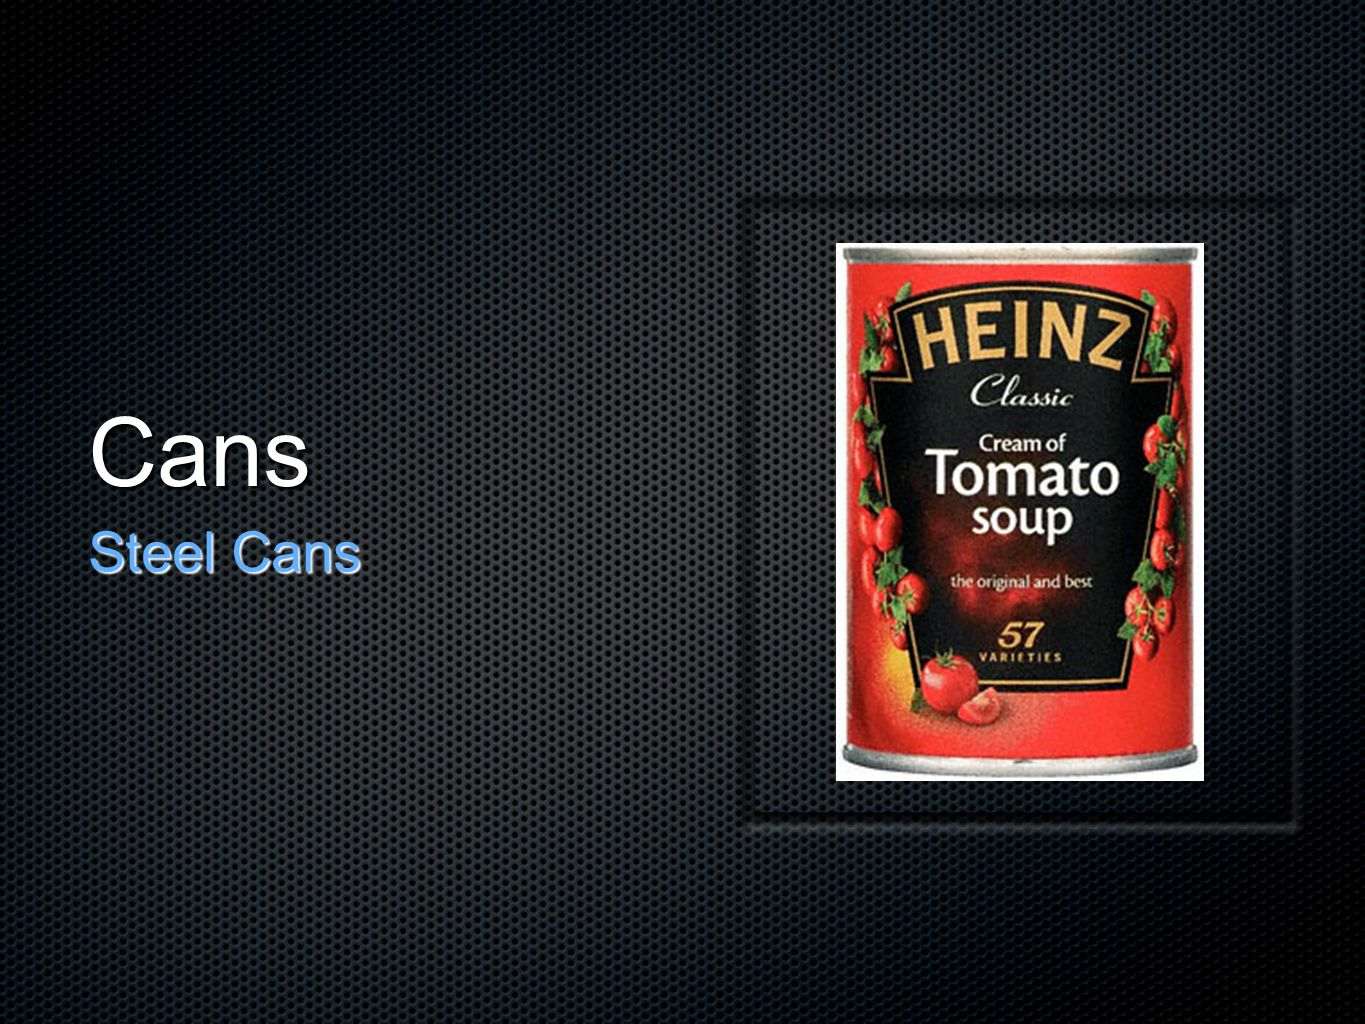 Cans Cans that have bulges or dents Air may have entered so there is a risk of microbial contamination Lacquer may be damaged & food may have reacted with the metal Canned food do not have a use-by date as they are required only on foods with a shelf life less than 2 years Canned food do not have a use-by date as they are only required on foods that have a shelf life of less than 2 years